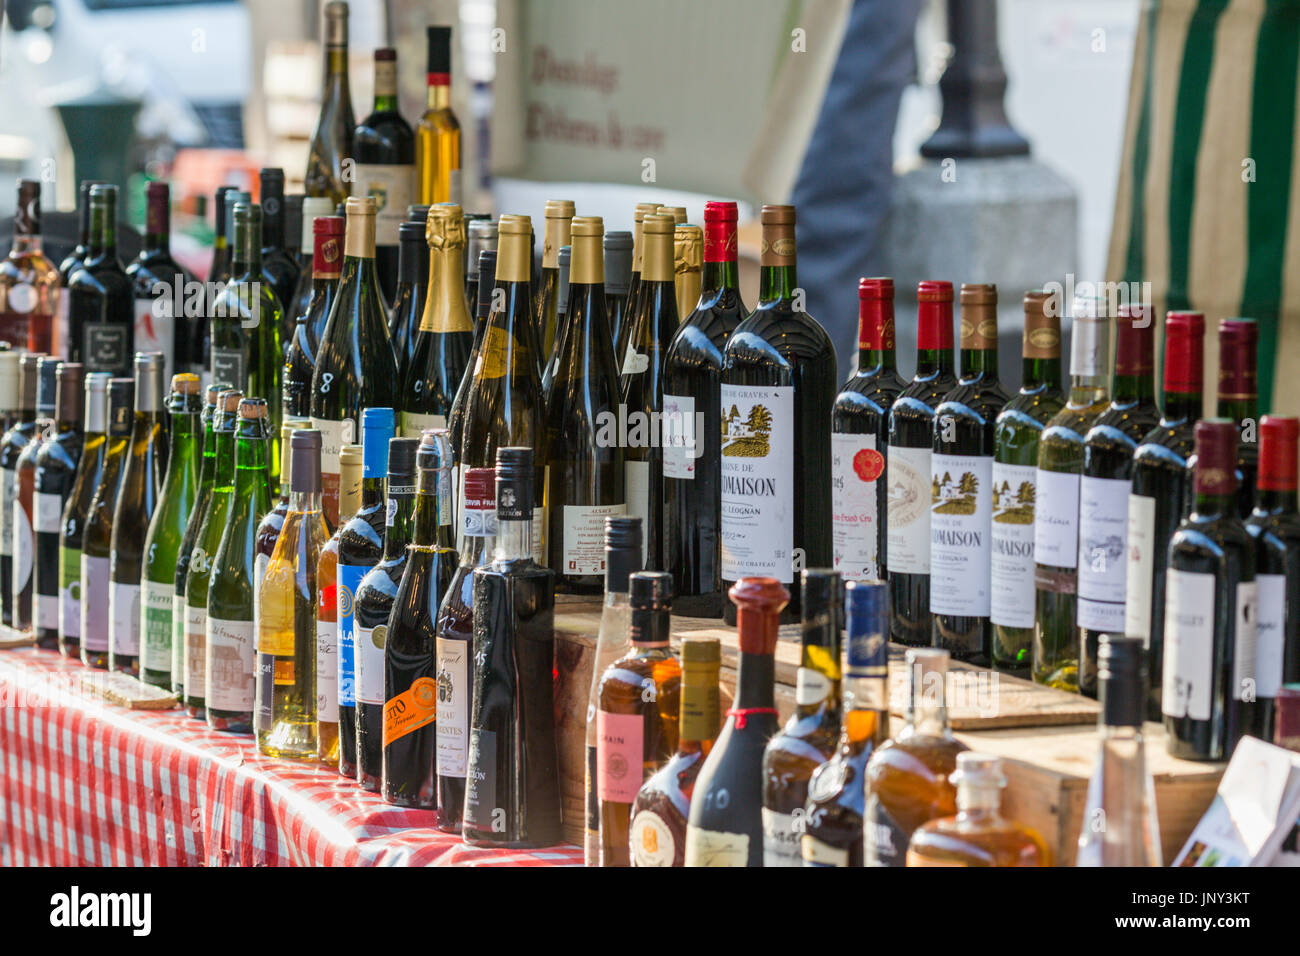 Paris. France - February 27, 2016: Wine for sale at the Saxe-Breteuil market in the 7th arrondissement of Paris. Stock Photo